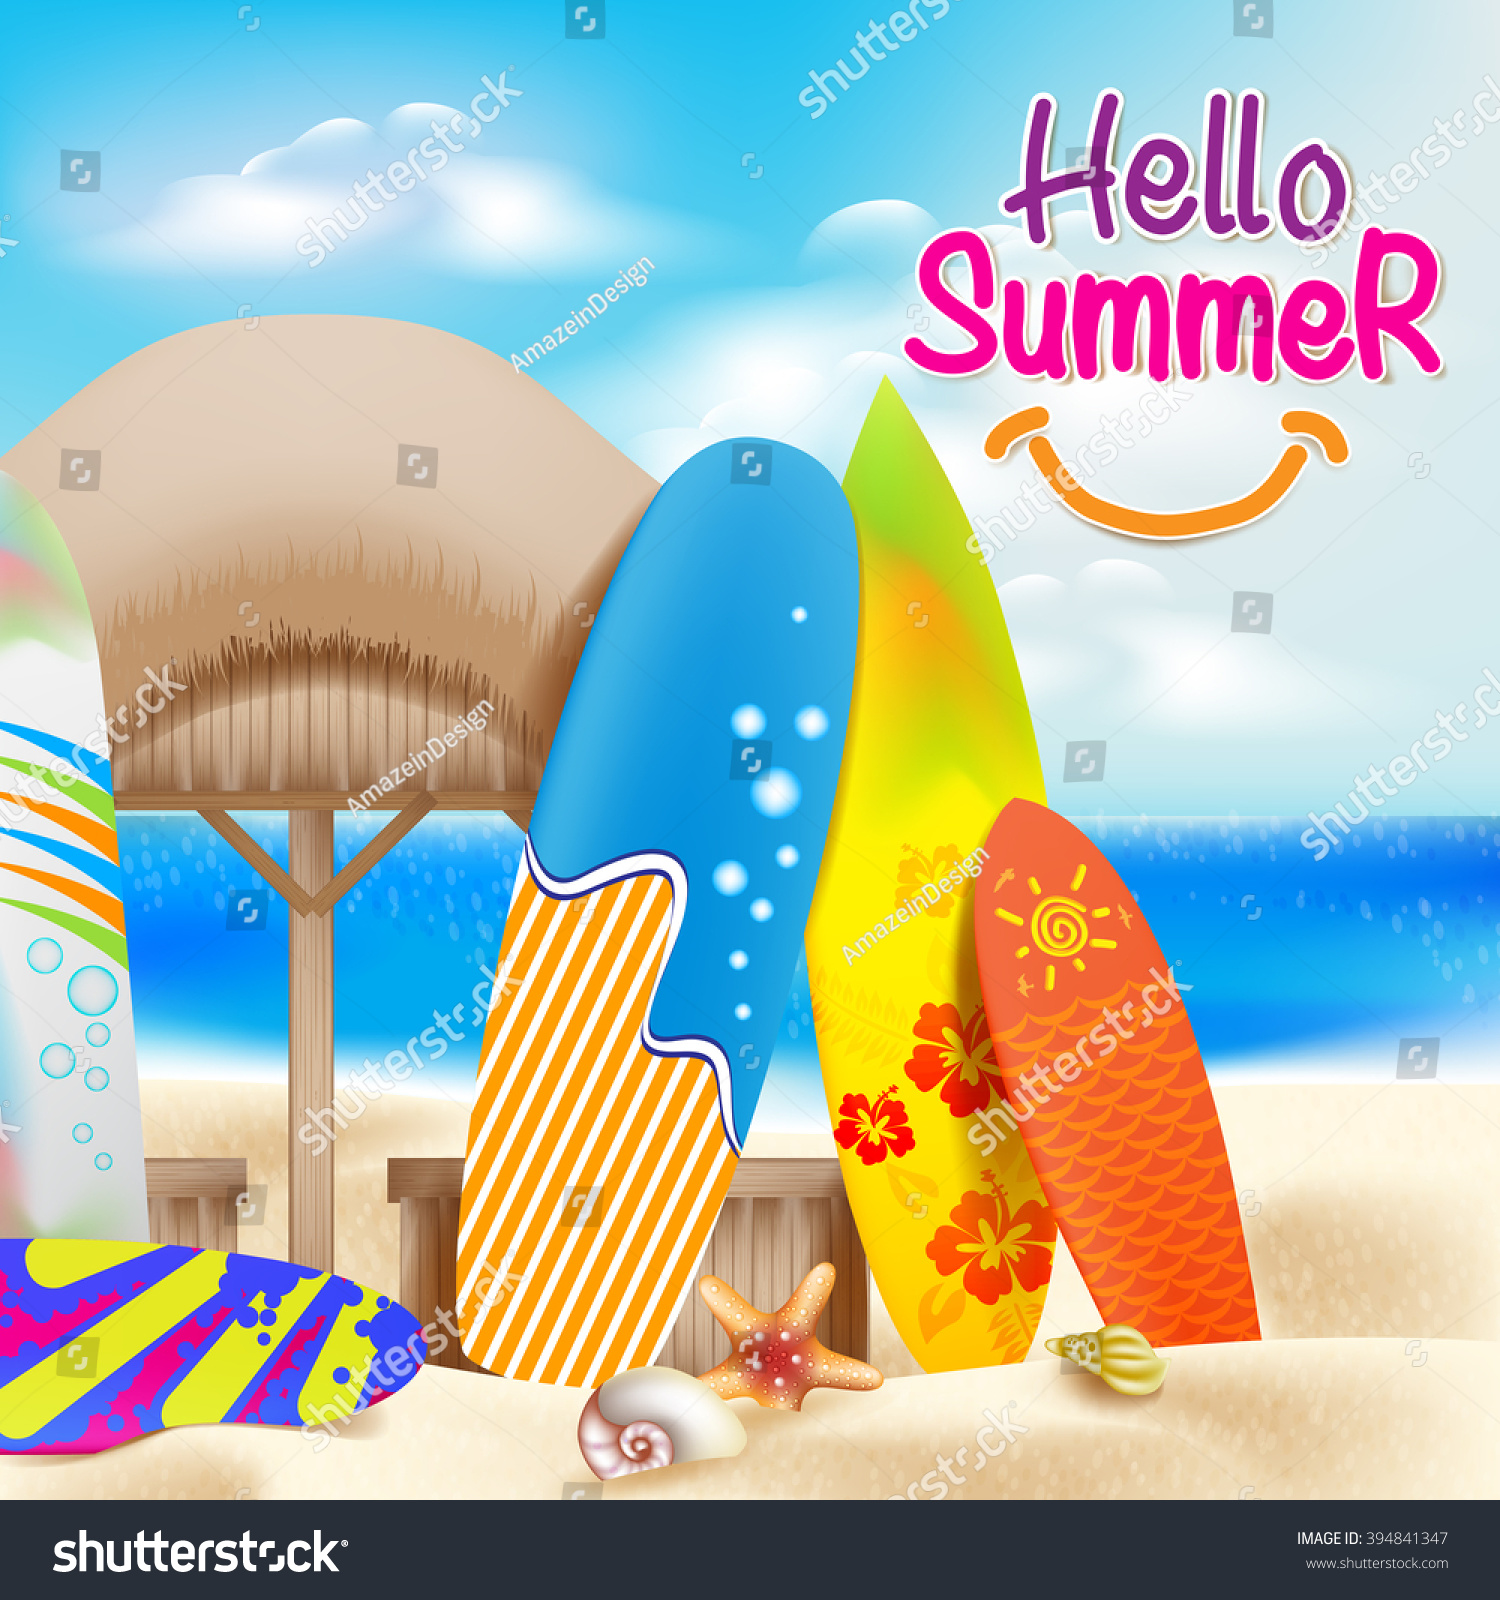 Nice Hello Summer Colorful Theme In The Beach Beside The Seashore With  Decorative Surfboards And Bright Sky